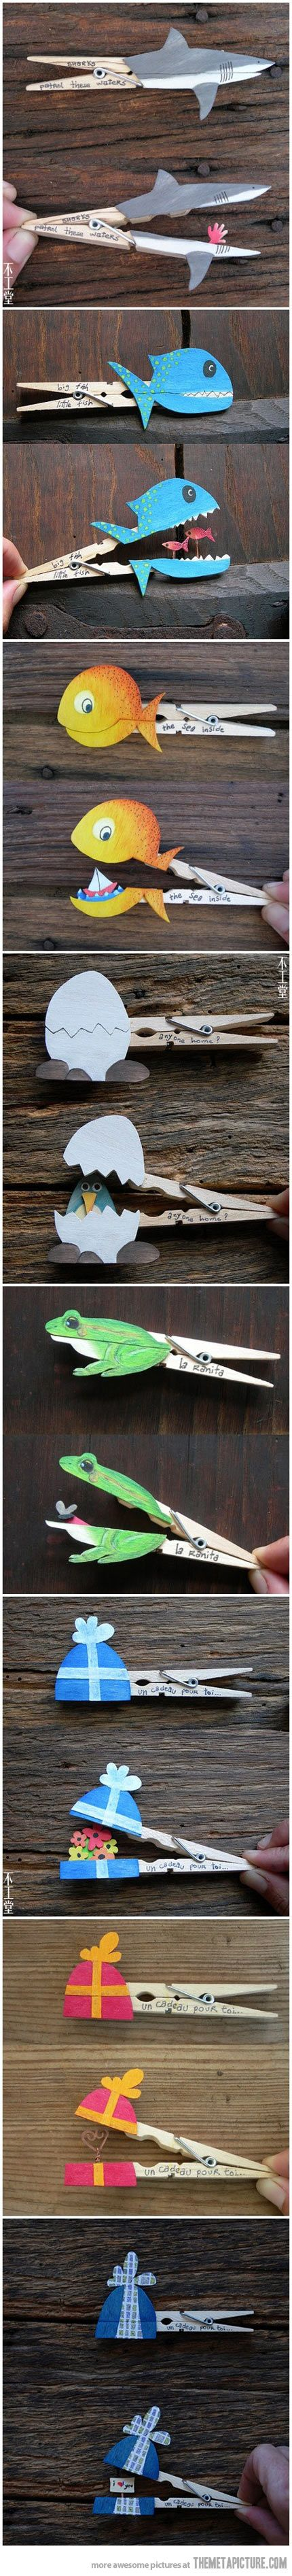 Fun With Clothespins…Kiwi would have with these